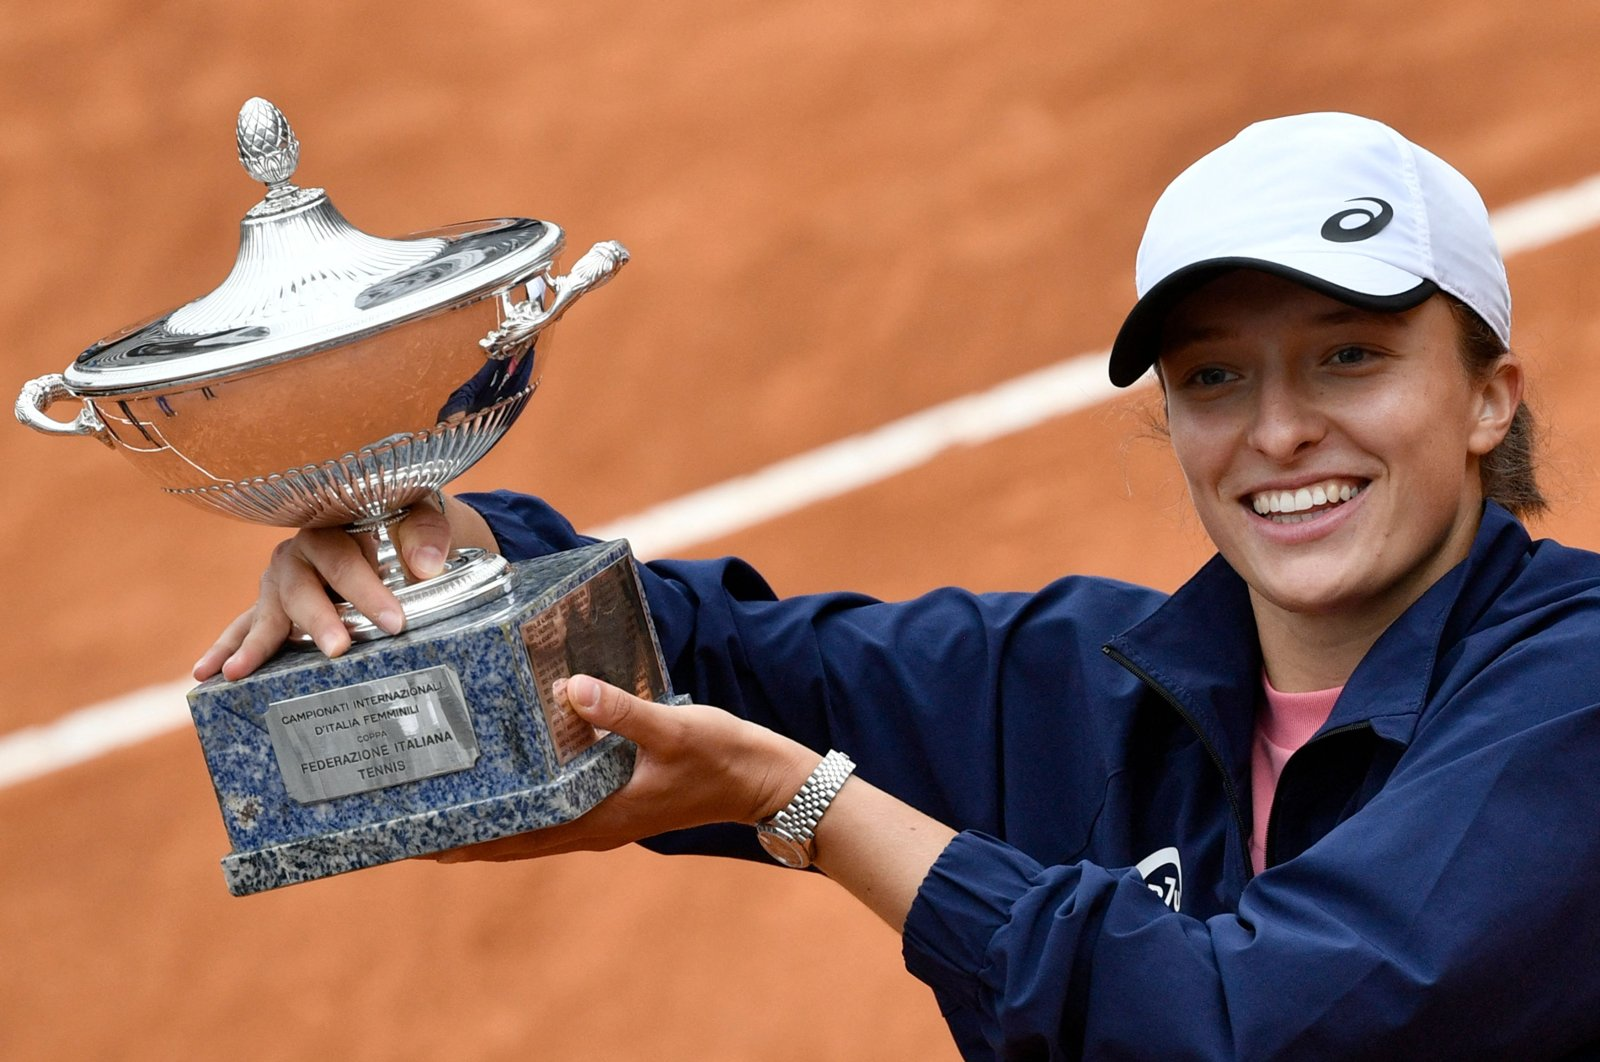 Poland's Iga Swiatek poses with the winner's trophy after defeating Czech Republic's Karolina Pliskova in the Italian Tennis Open final at Foro Italico, Rome, Italy,  May 16, 2021. (AFP Photo)